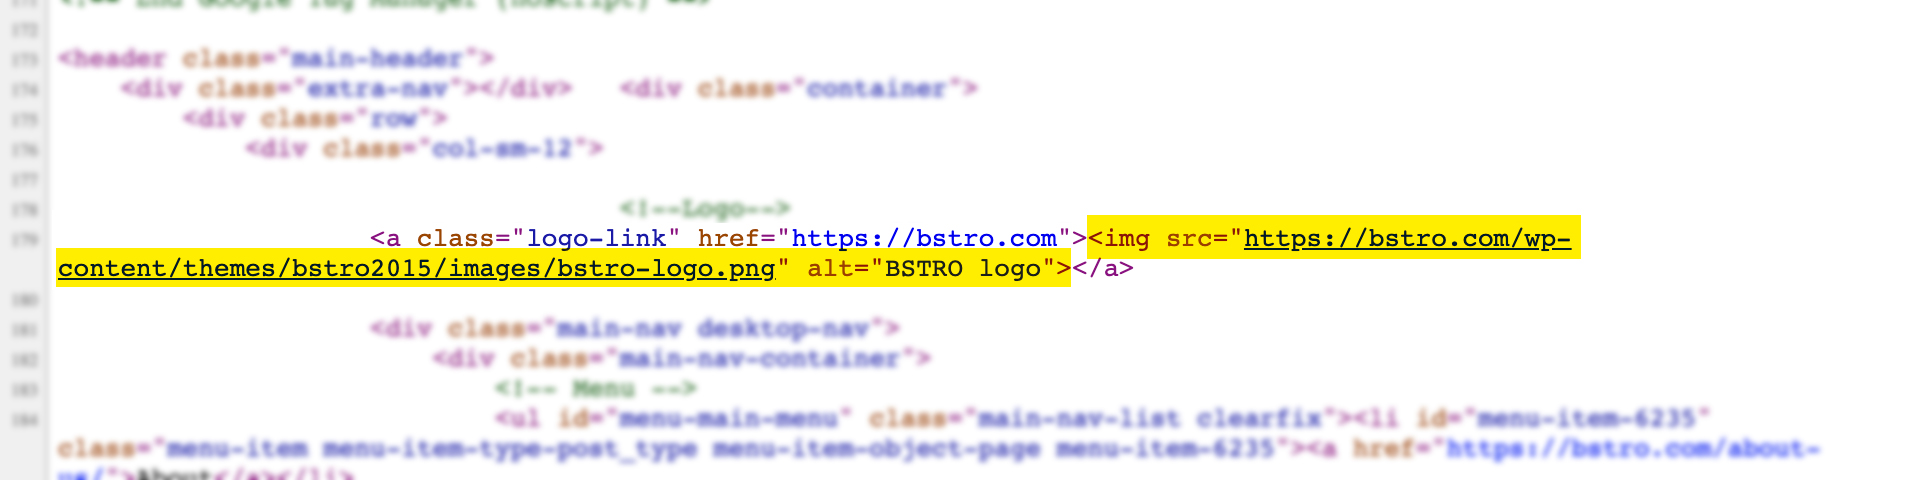 Example of clean code for a link with properly set alt text for image.